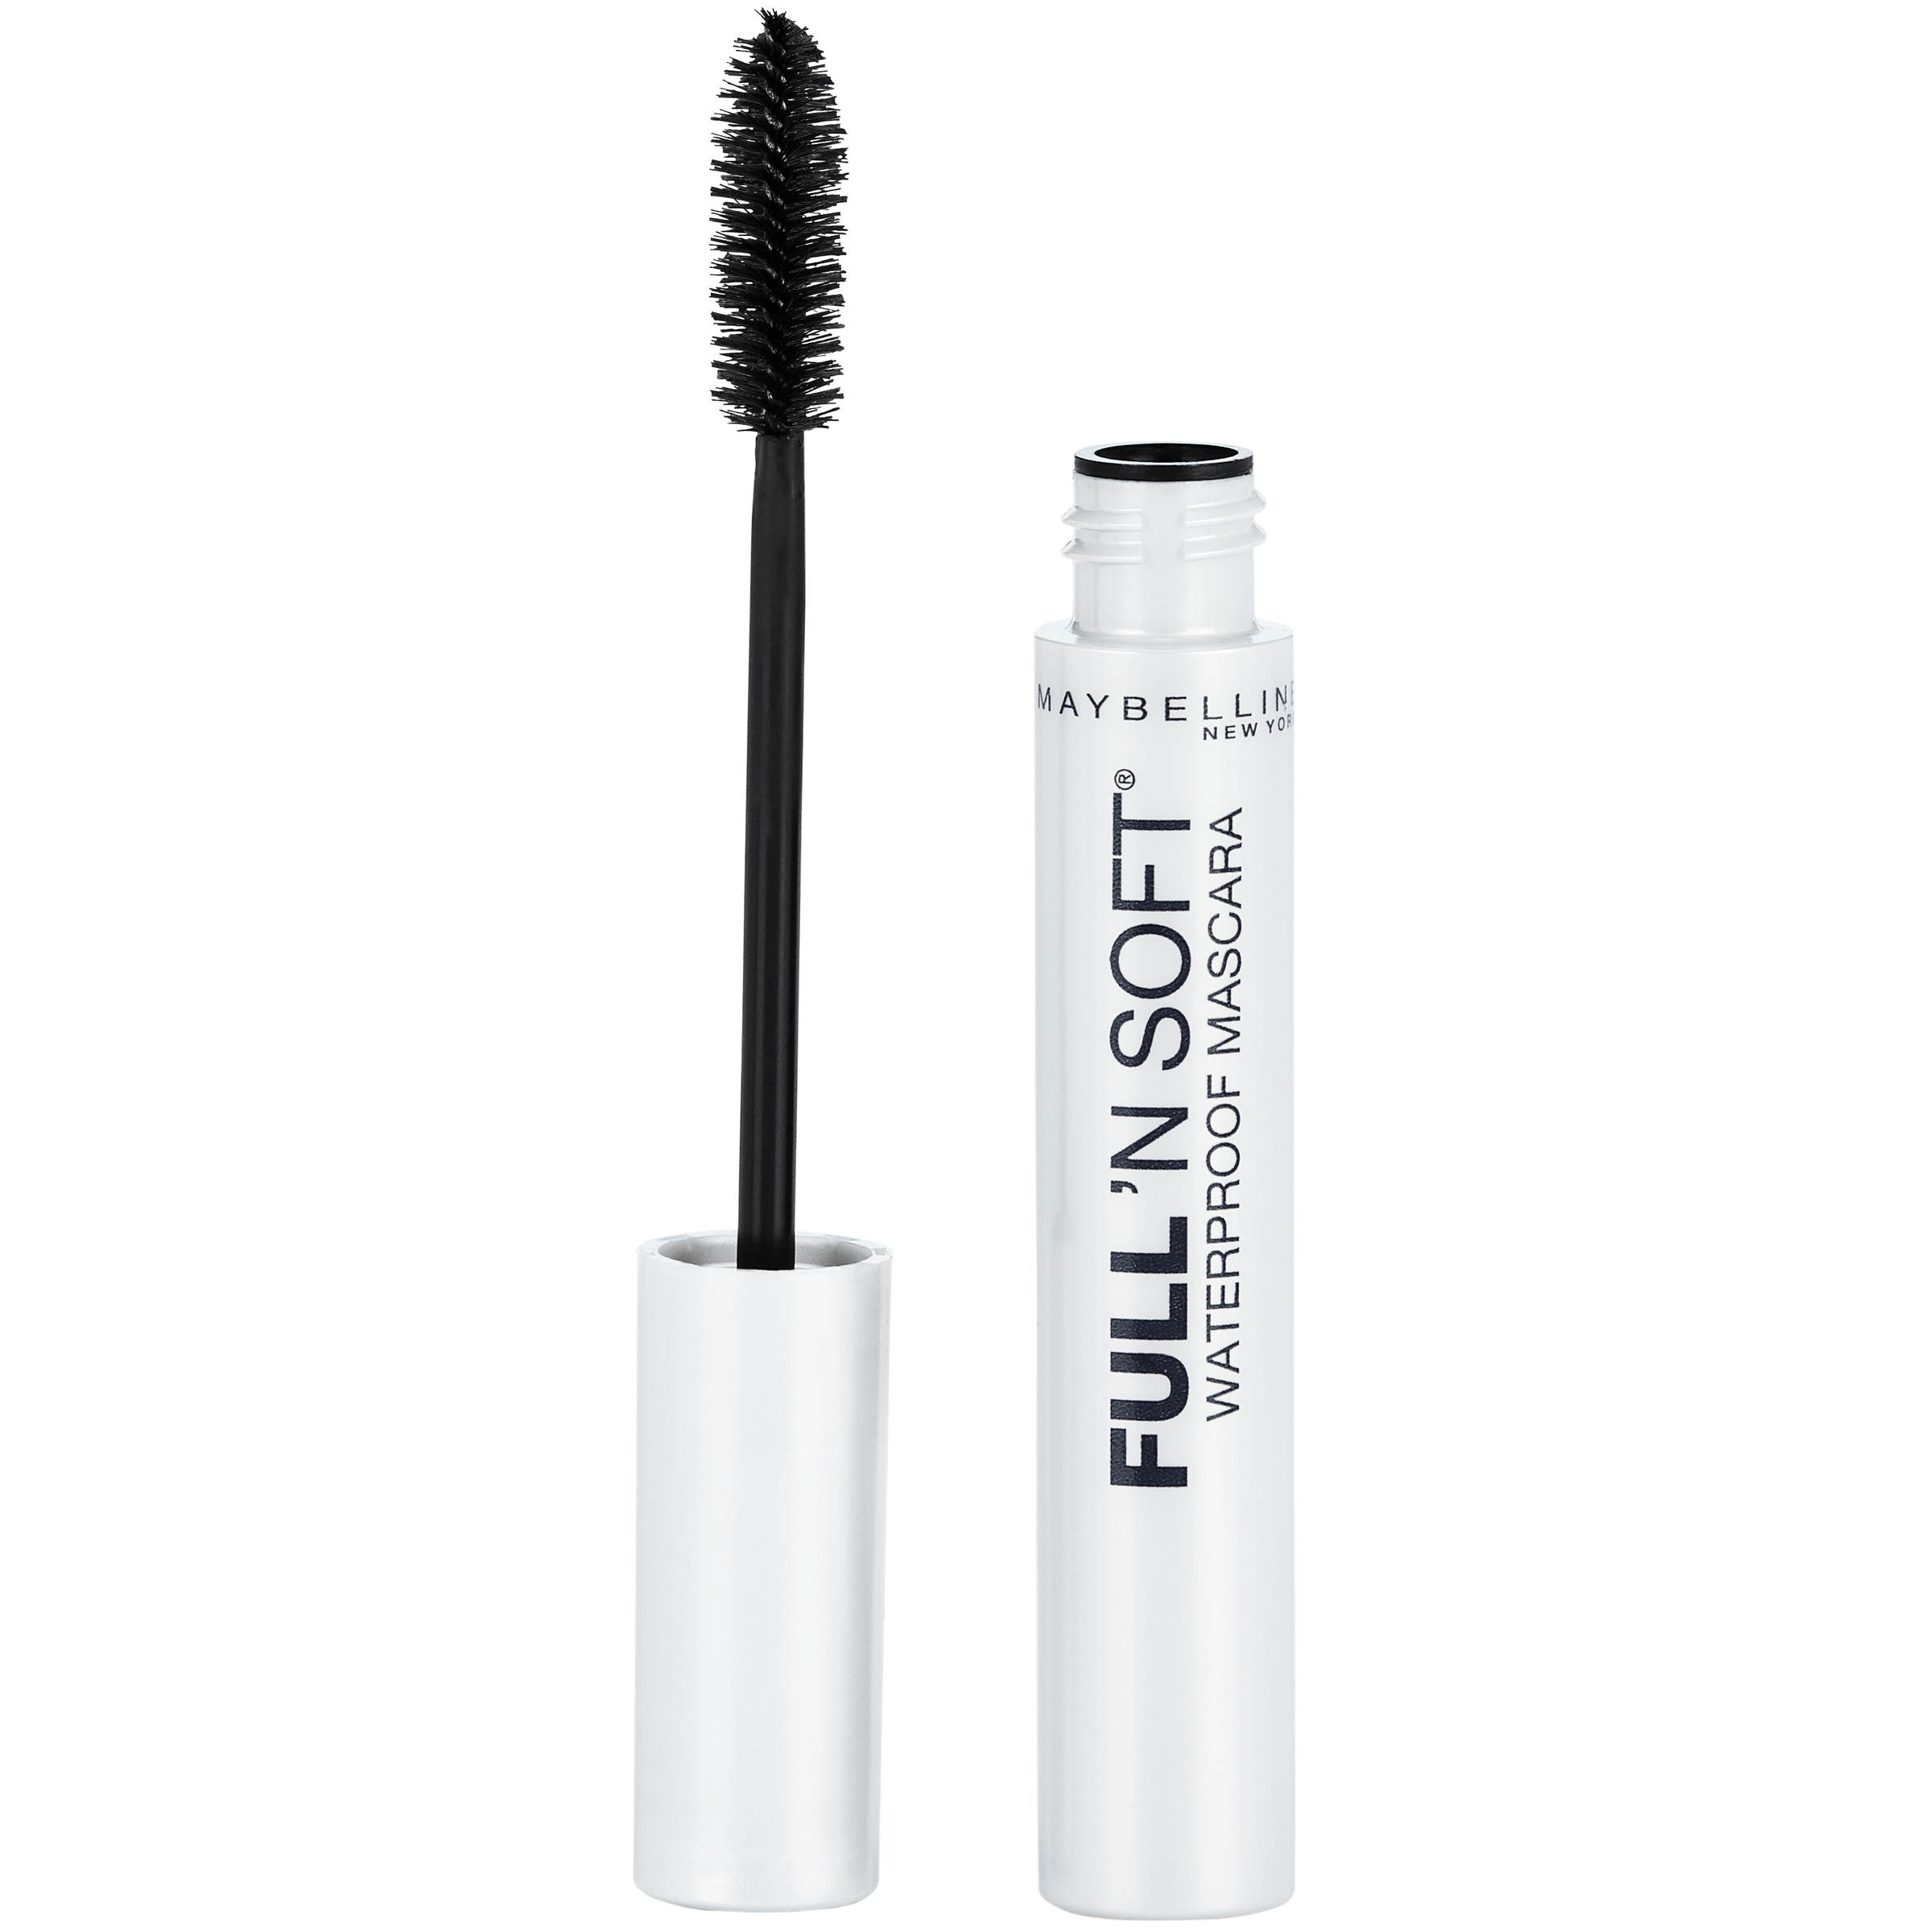 Maybelline New York Full 'N Soft Waterproof Mascara, Very Black